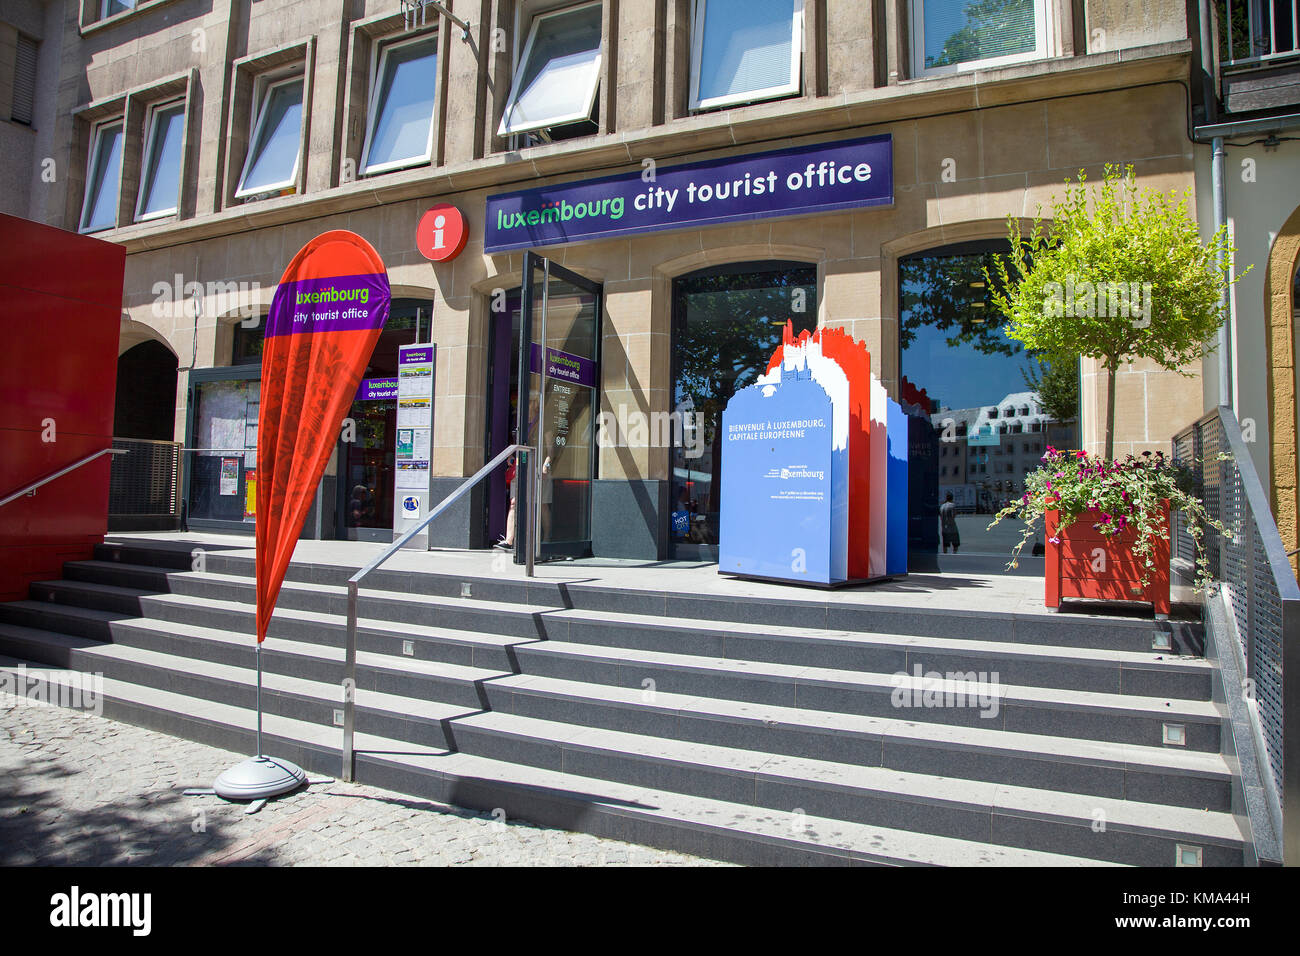 Tourist office, Place Guillaume II square, Luxembourg-city, Luxembourg, Europe - Stock Image